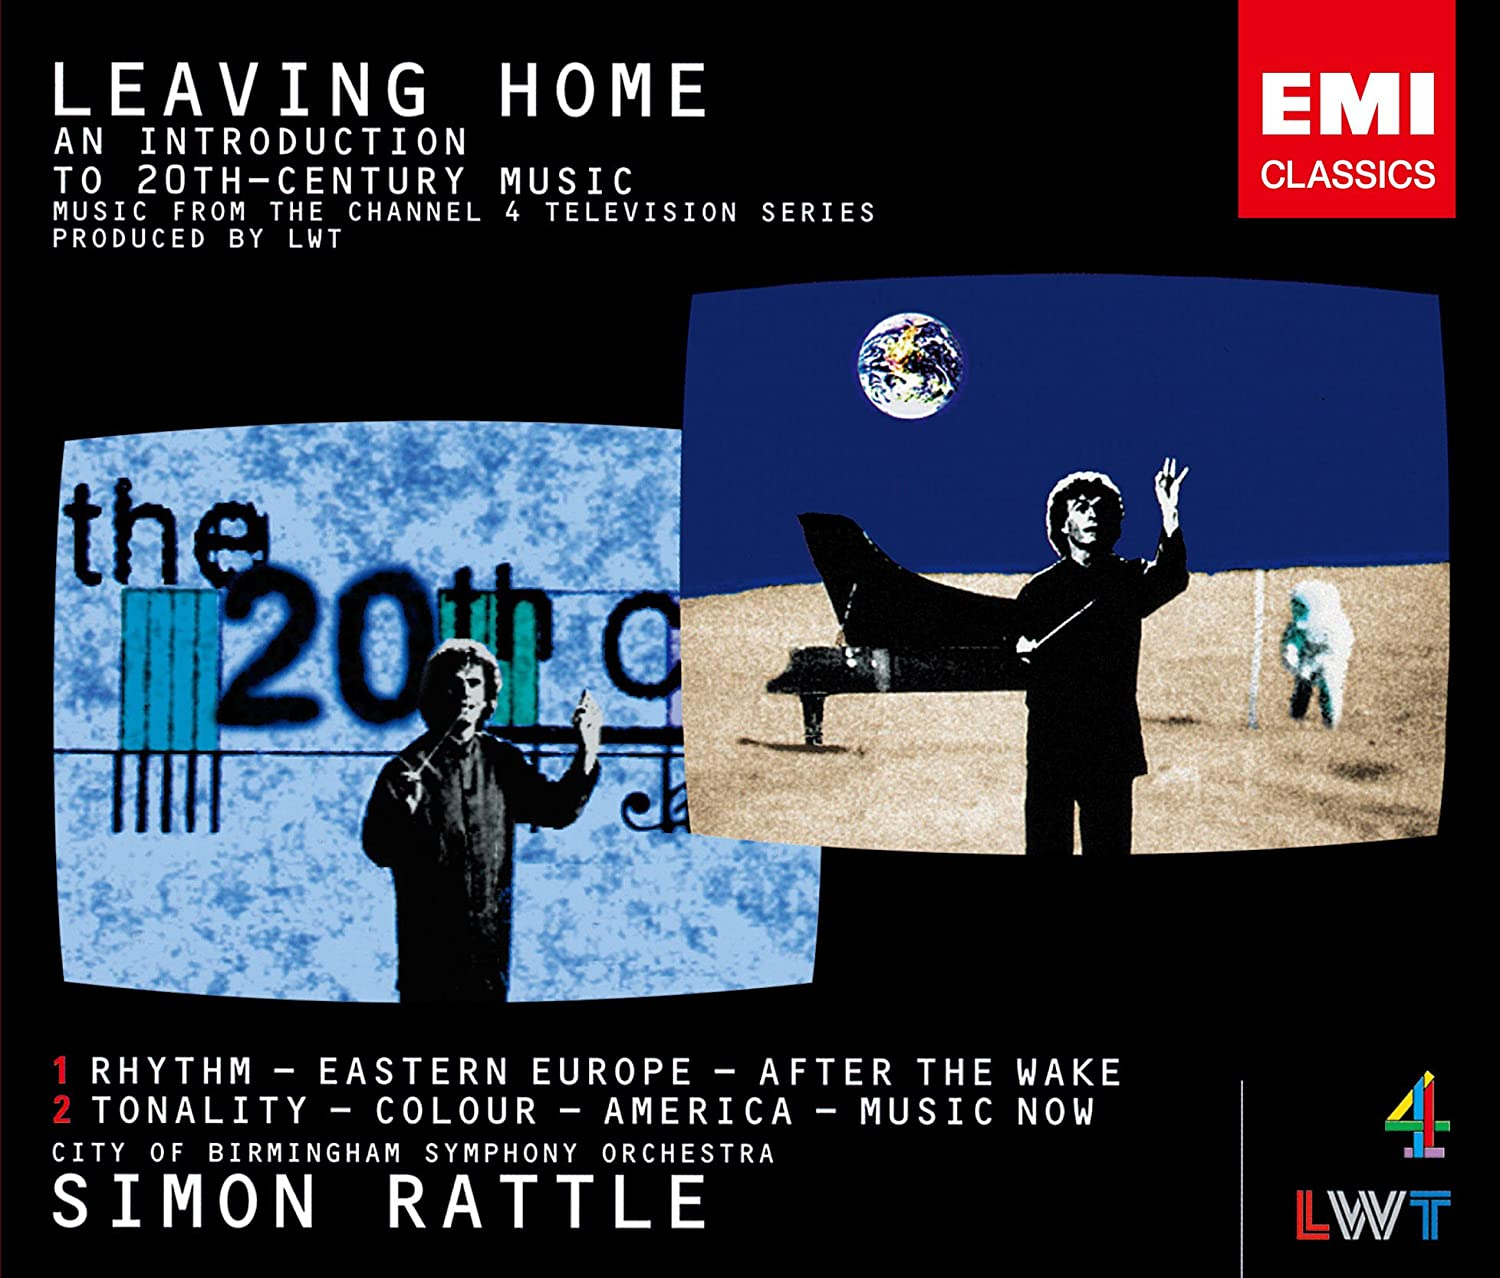 Rattle & City Of Birmingham Symphony Orchestra - Leaving Home - Orchestral Music In The Twentieth Century [Japan LTD HQCD] TOCE-90162